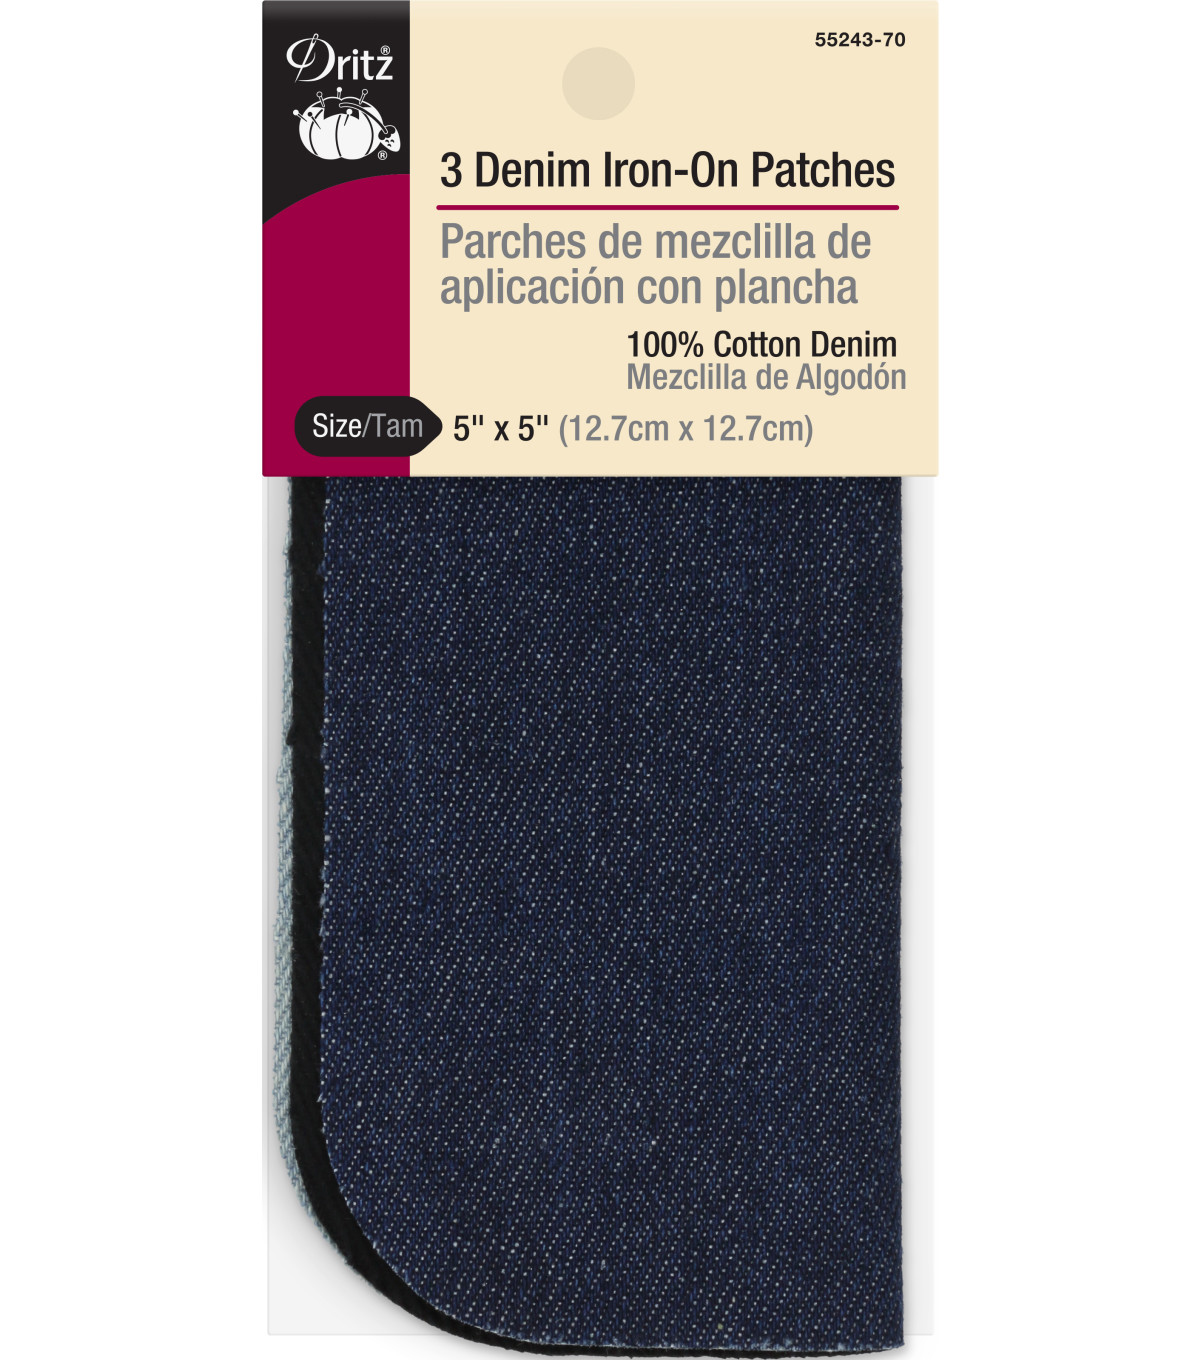 "Dritz 5"" x 5"" Denim Iron-On Patches Assorted 3pcs"